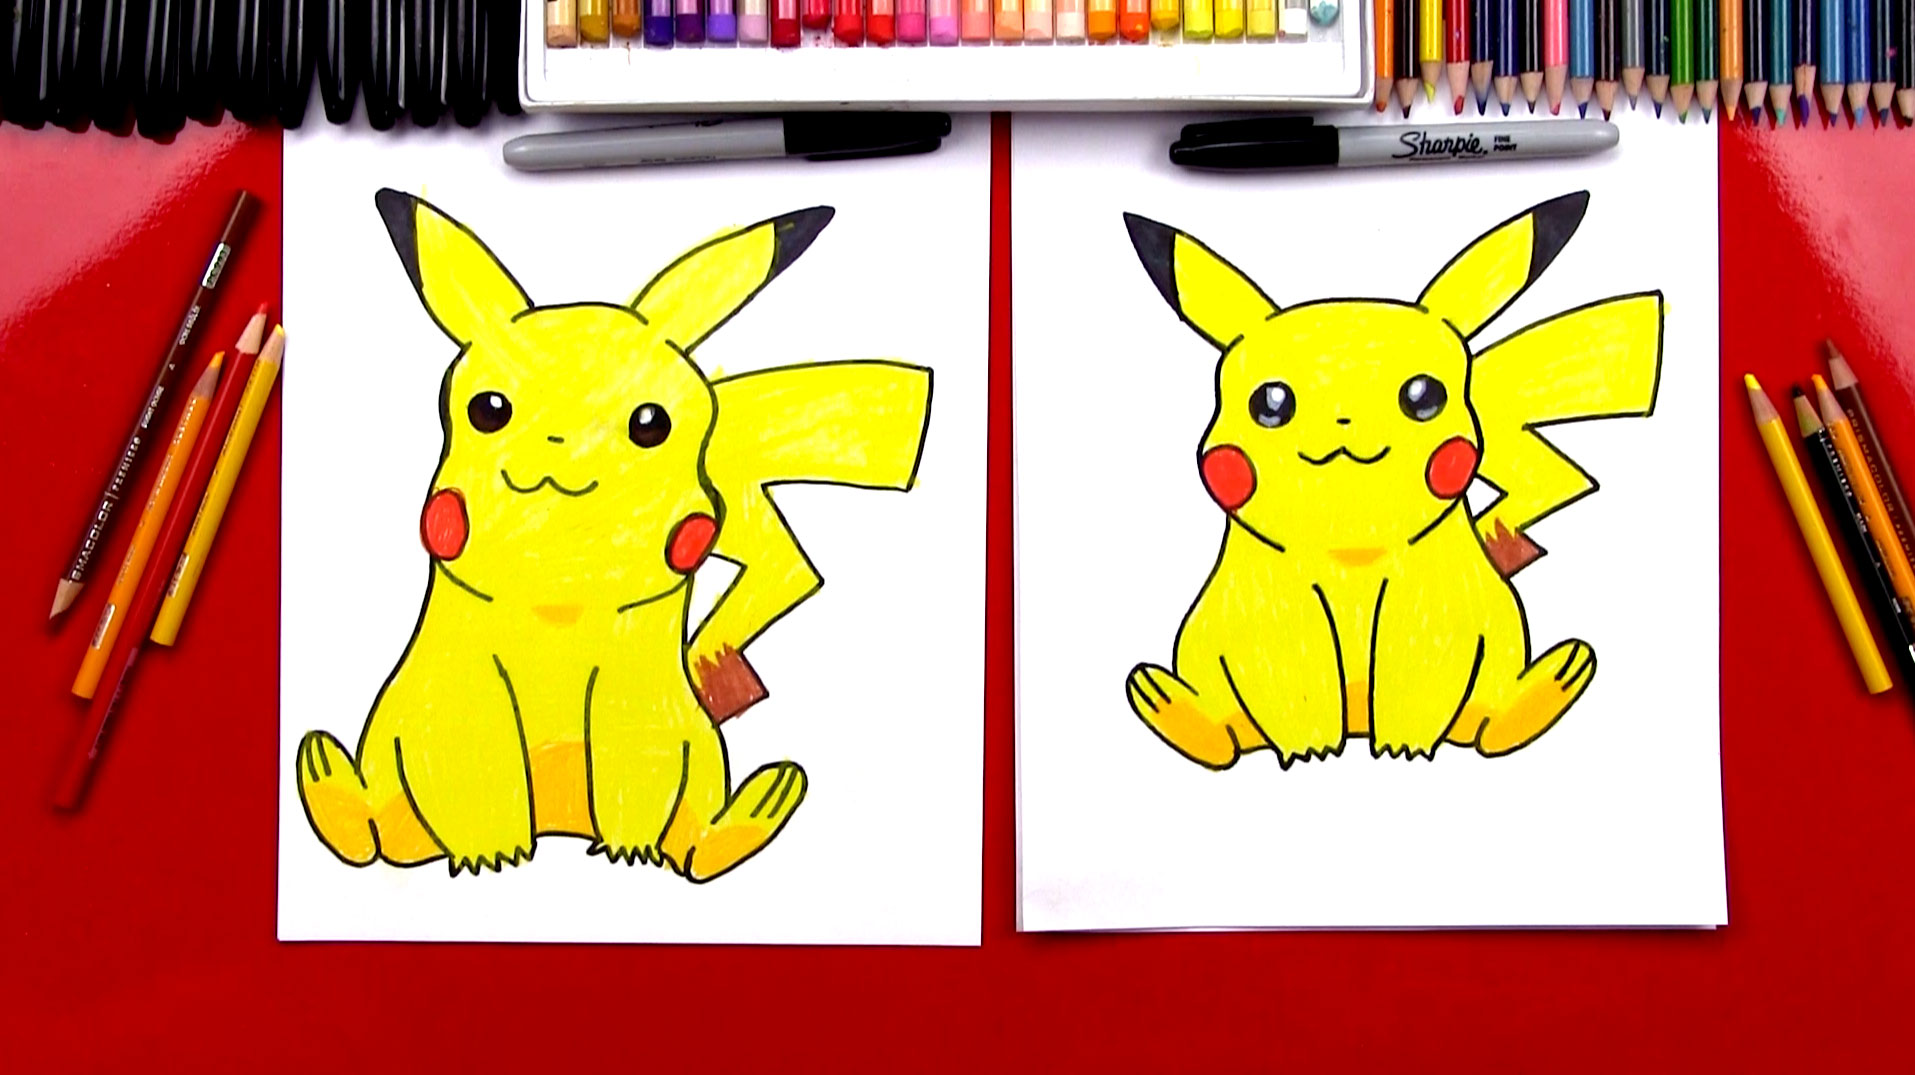 Drawn pikachu shaded For Hub Kids To Pikachu